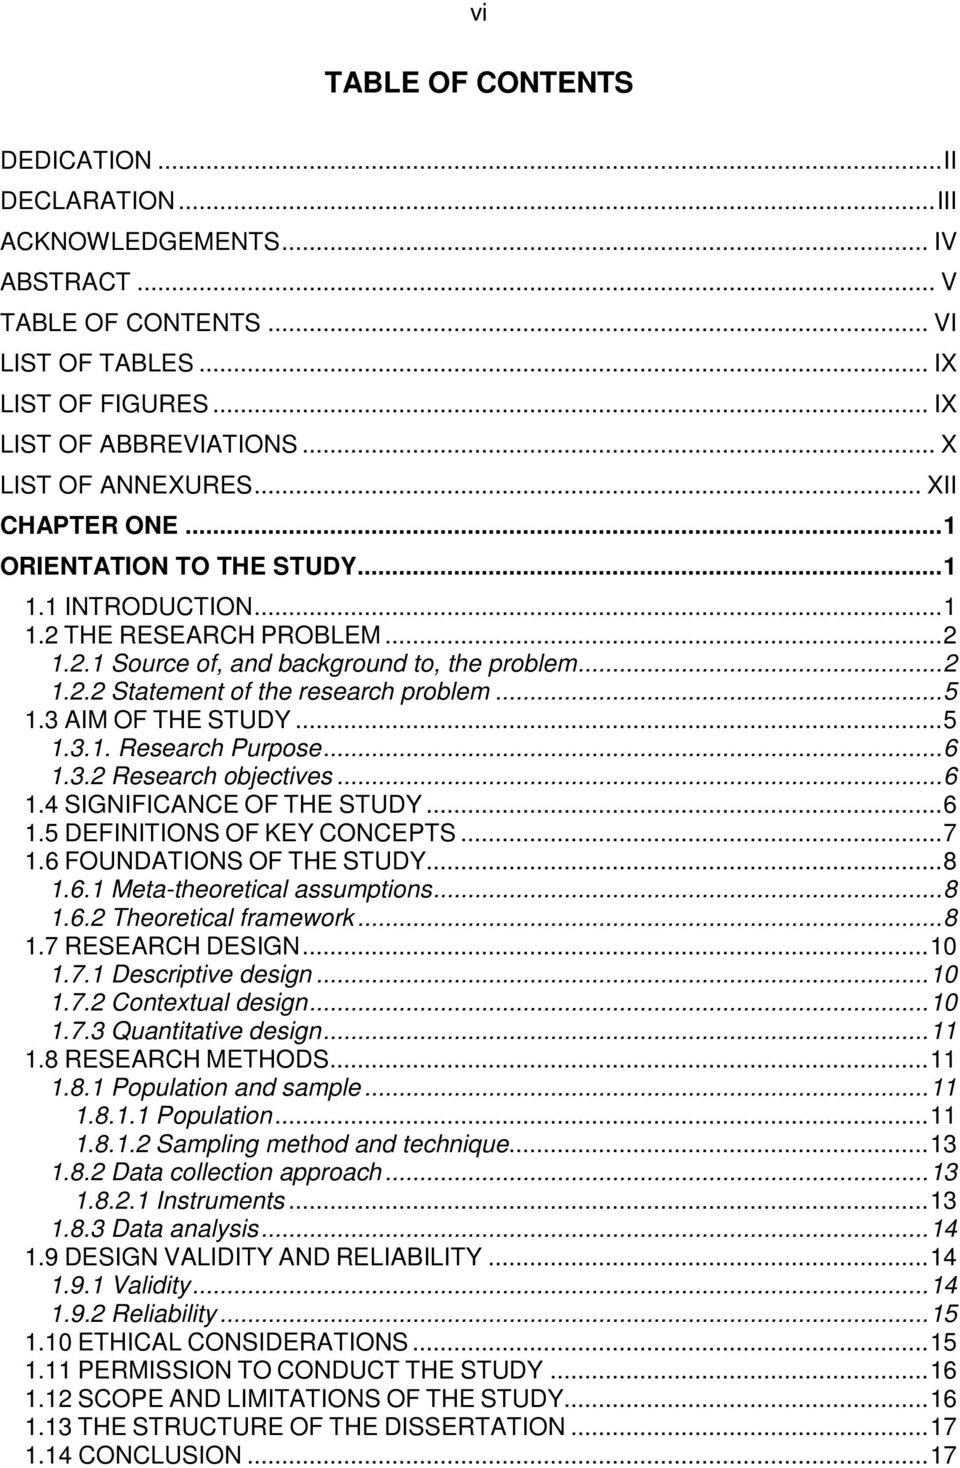 .. 5 1.3 AIM OF THE STUDY... 5 1.3.1. Research Purpose... 6 1.3.2 Research objectives... 6 1.4 SIGNIFICANCE OF THE STUDY... 6 1.5 DEFINITIONS OF KEY CONCEPTS... 7 1.6 FOUNDATIONS OF THE STUDY... 8 1.